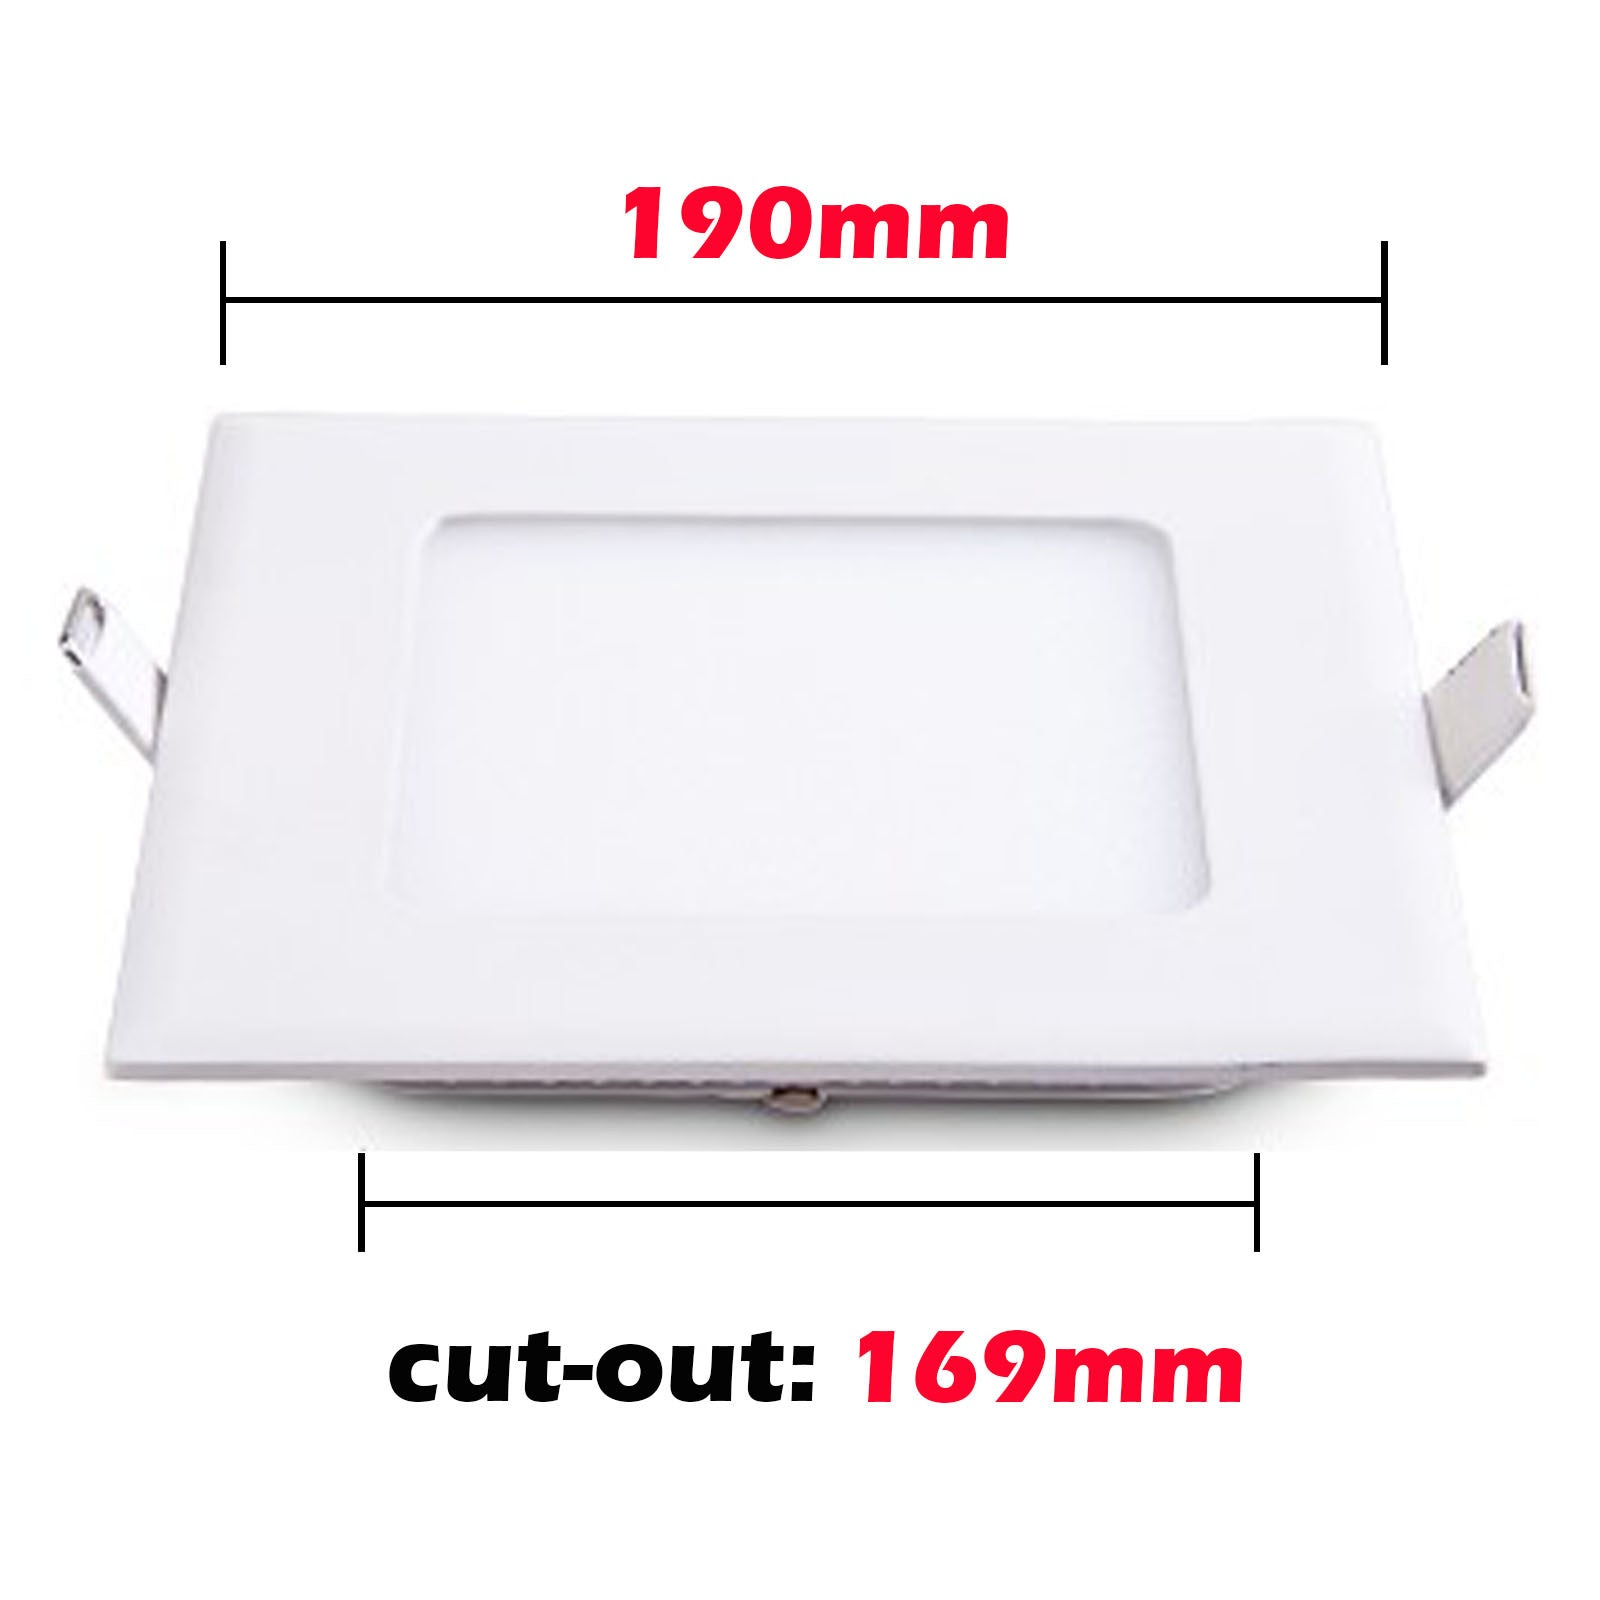 15W Recessed Square Shape LED Panel Light Cool White Lamp Downlight AC 85-265V - sweet-casa.com